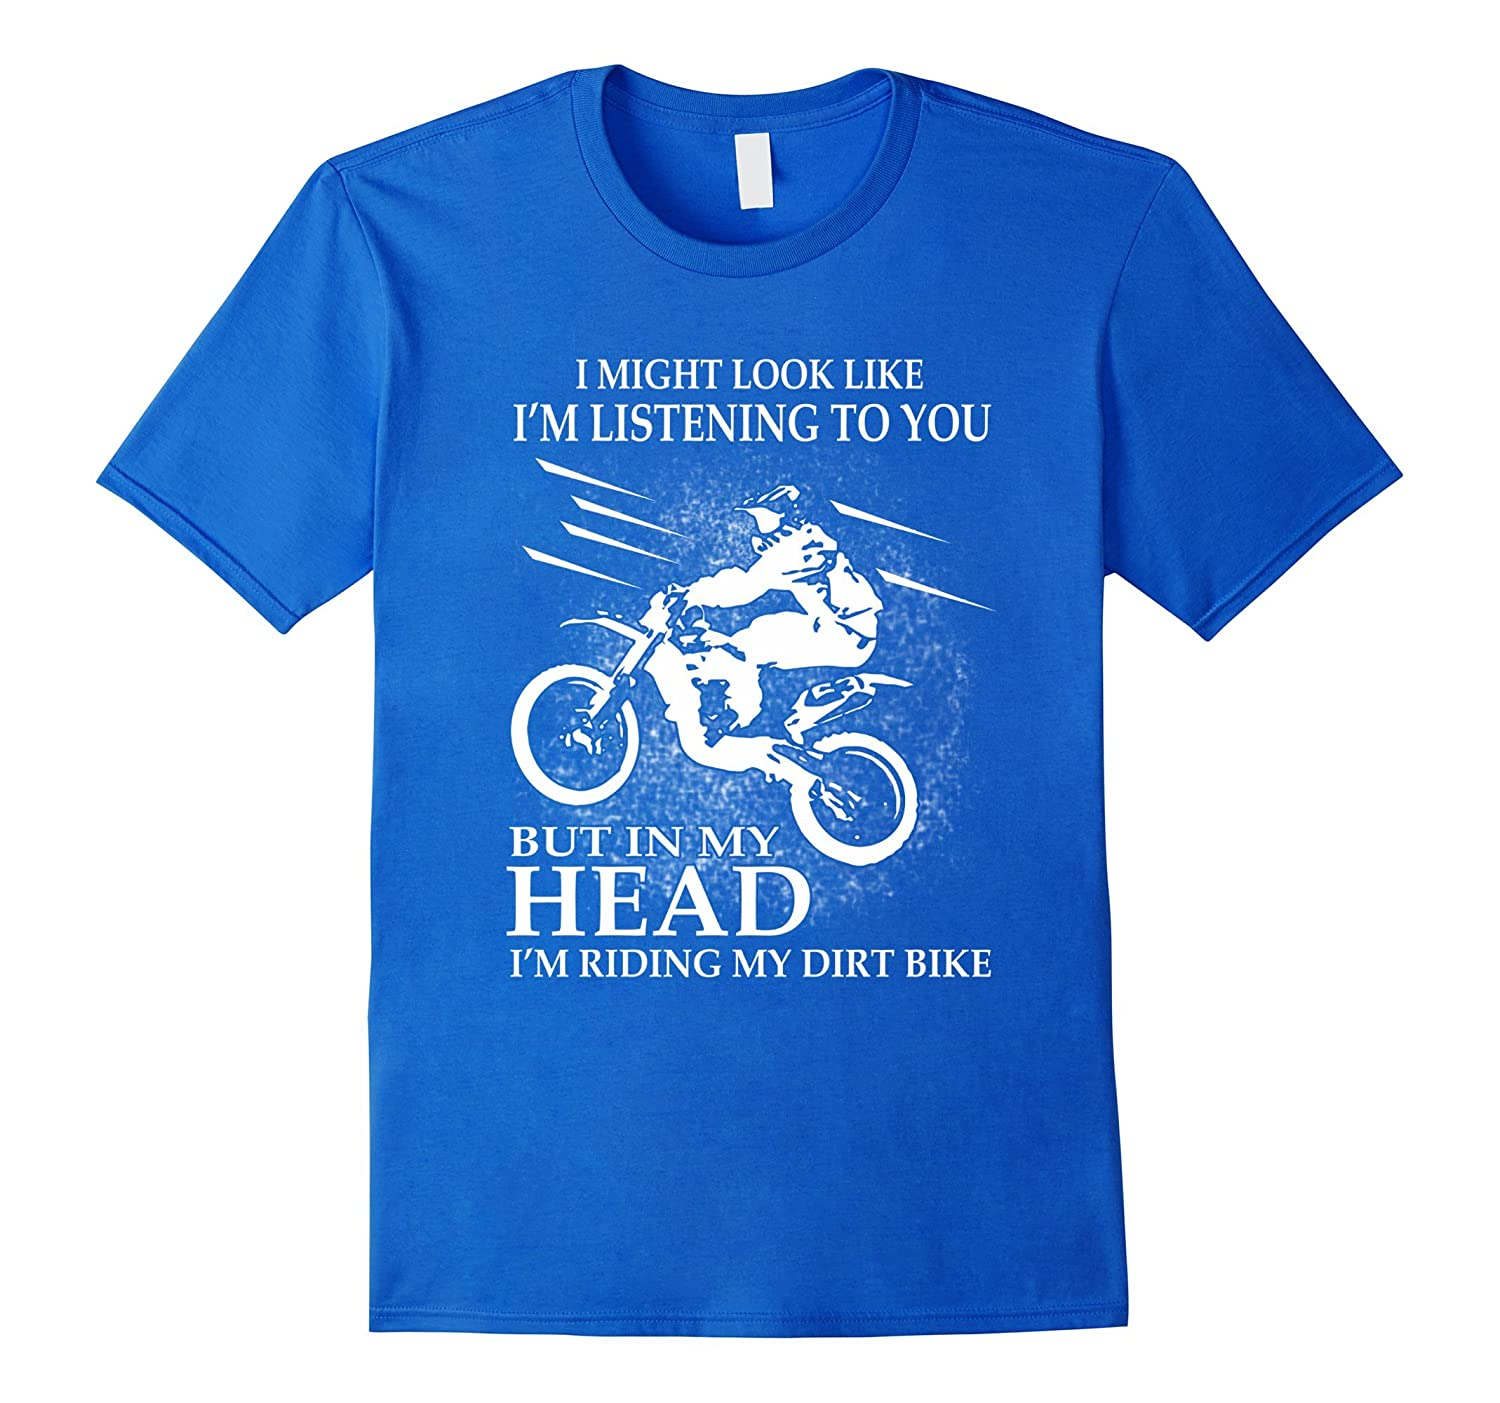 I m Riding My Dirt Bike - Funny Motocross Shirt-ANZ - Anztshirt 39c2ec1c2